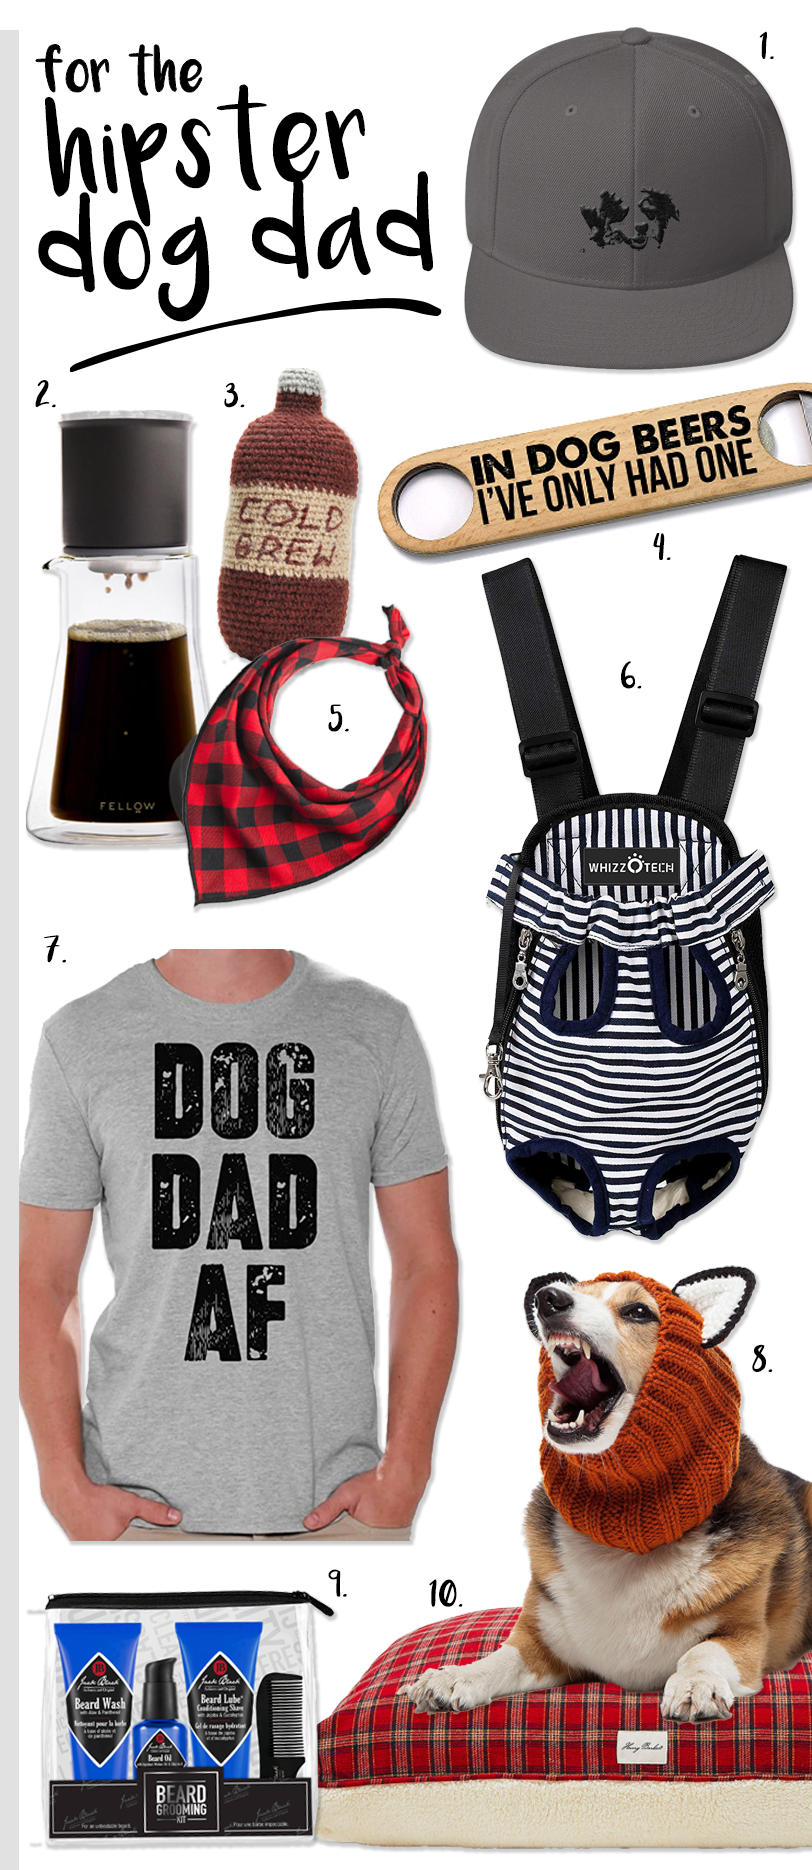 Gift ideas for the hipster dog dad. #dogdadgifts